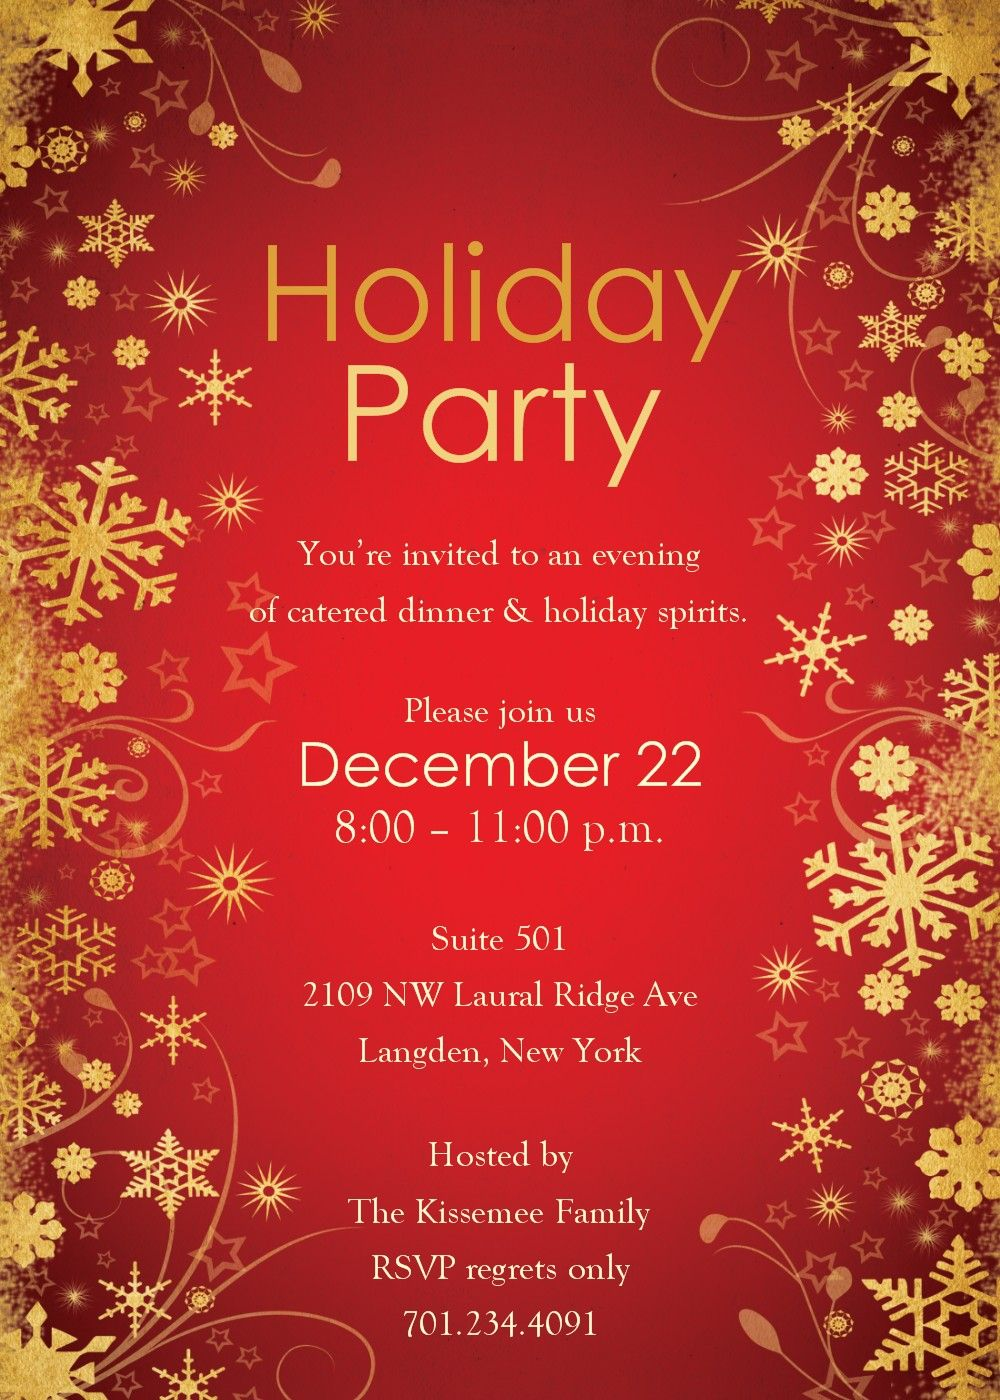 free holiday party invitation templates AgqSZAoJ – Office Holiday Party Invites